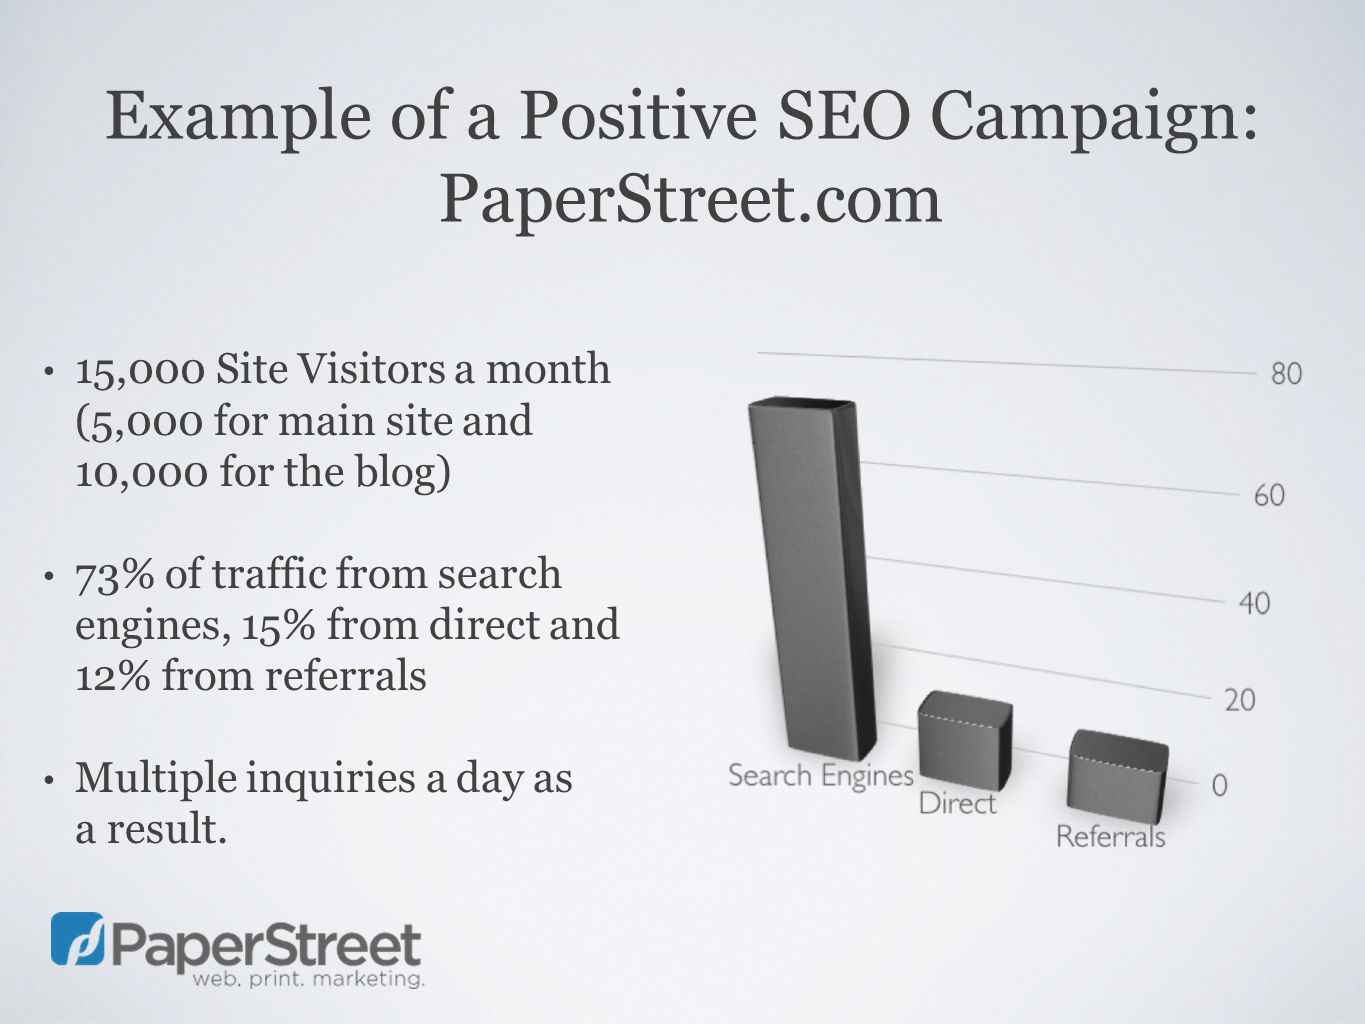 Example of a Positive SEO Campaign: PaperStreet.com 15,000 Site Visitors a month (5,000 for main site and 10,000 for the blog) 73% of traffic from search engines, 15% from direct and 12% from referrals Multiple inquiries a day as a result.